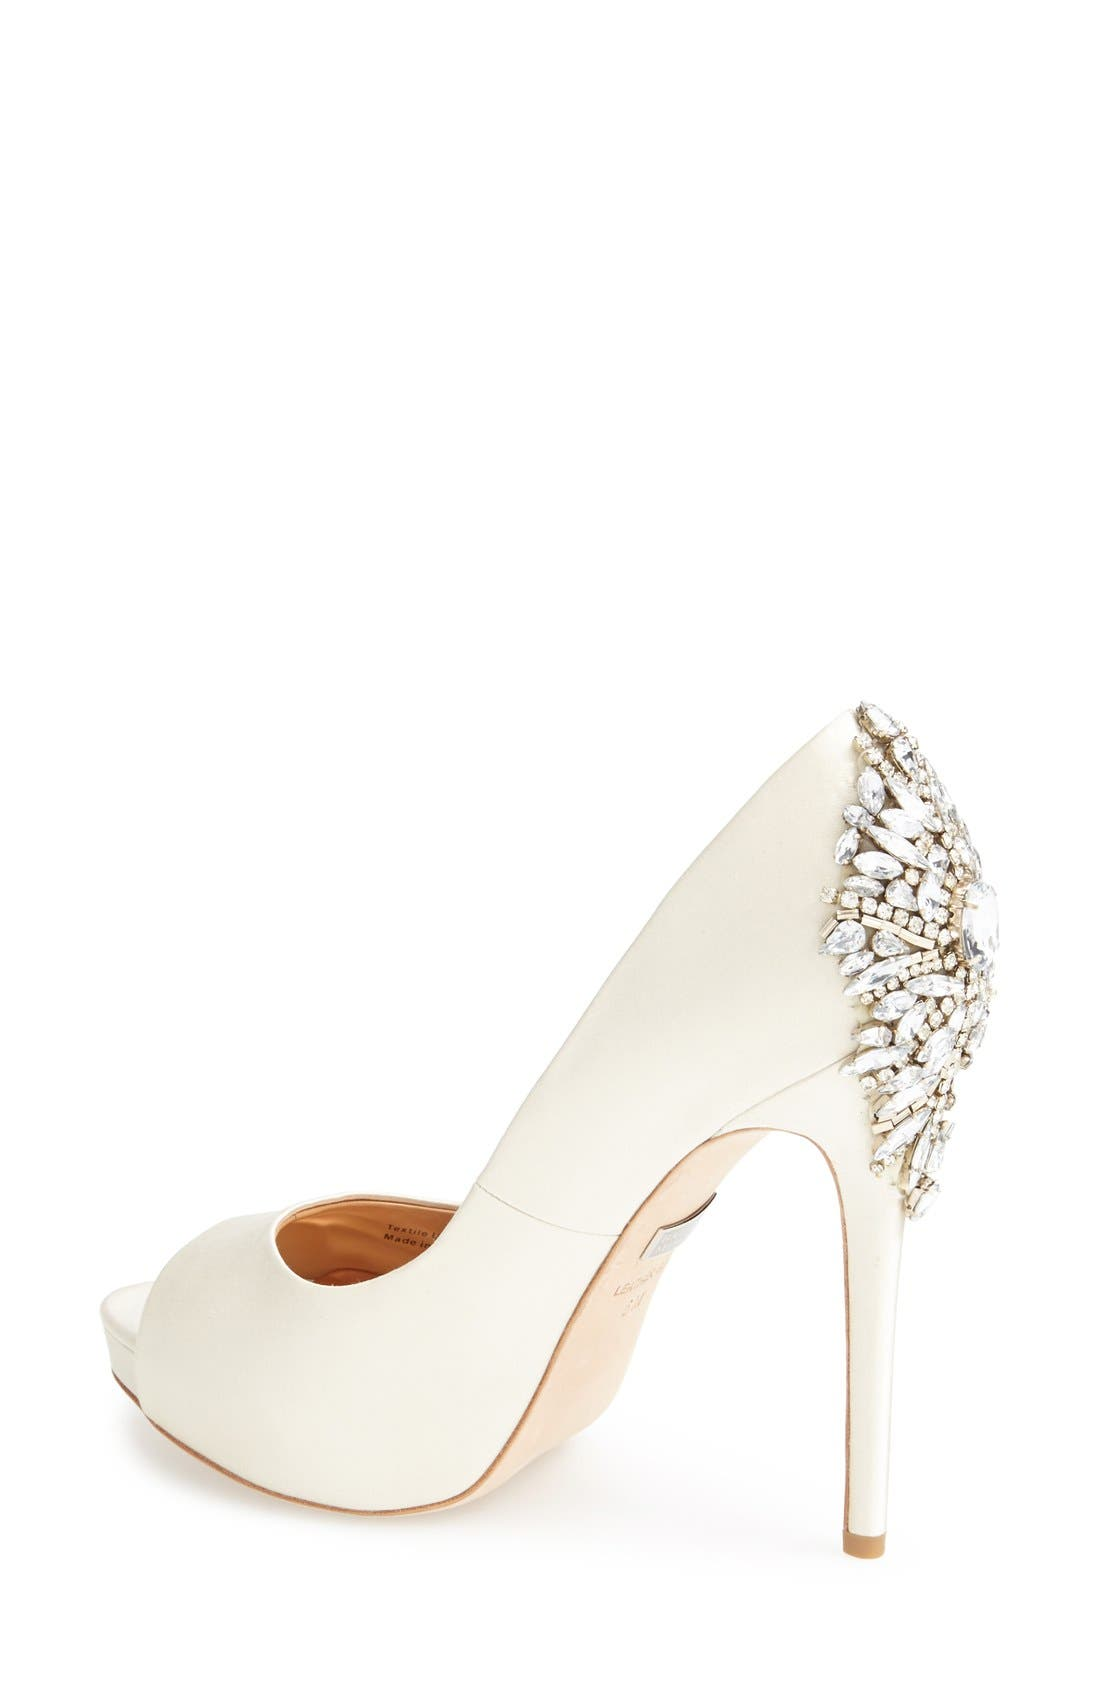 BADGLEY MISCHKA COLLECTION, Badgley Mischka 'Kiara' Crystal Back Open Toe Pump, Alternate thumbnail 2, color, IVORY SATN